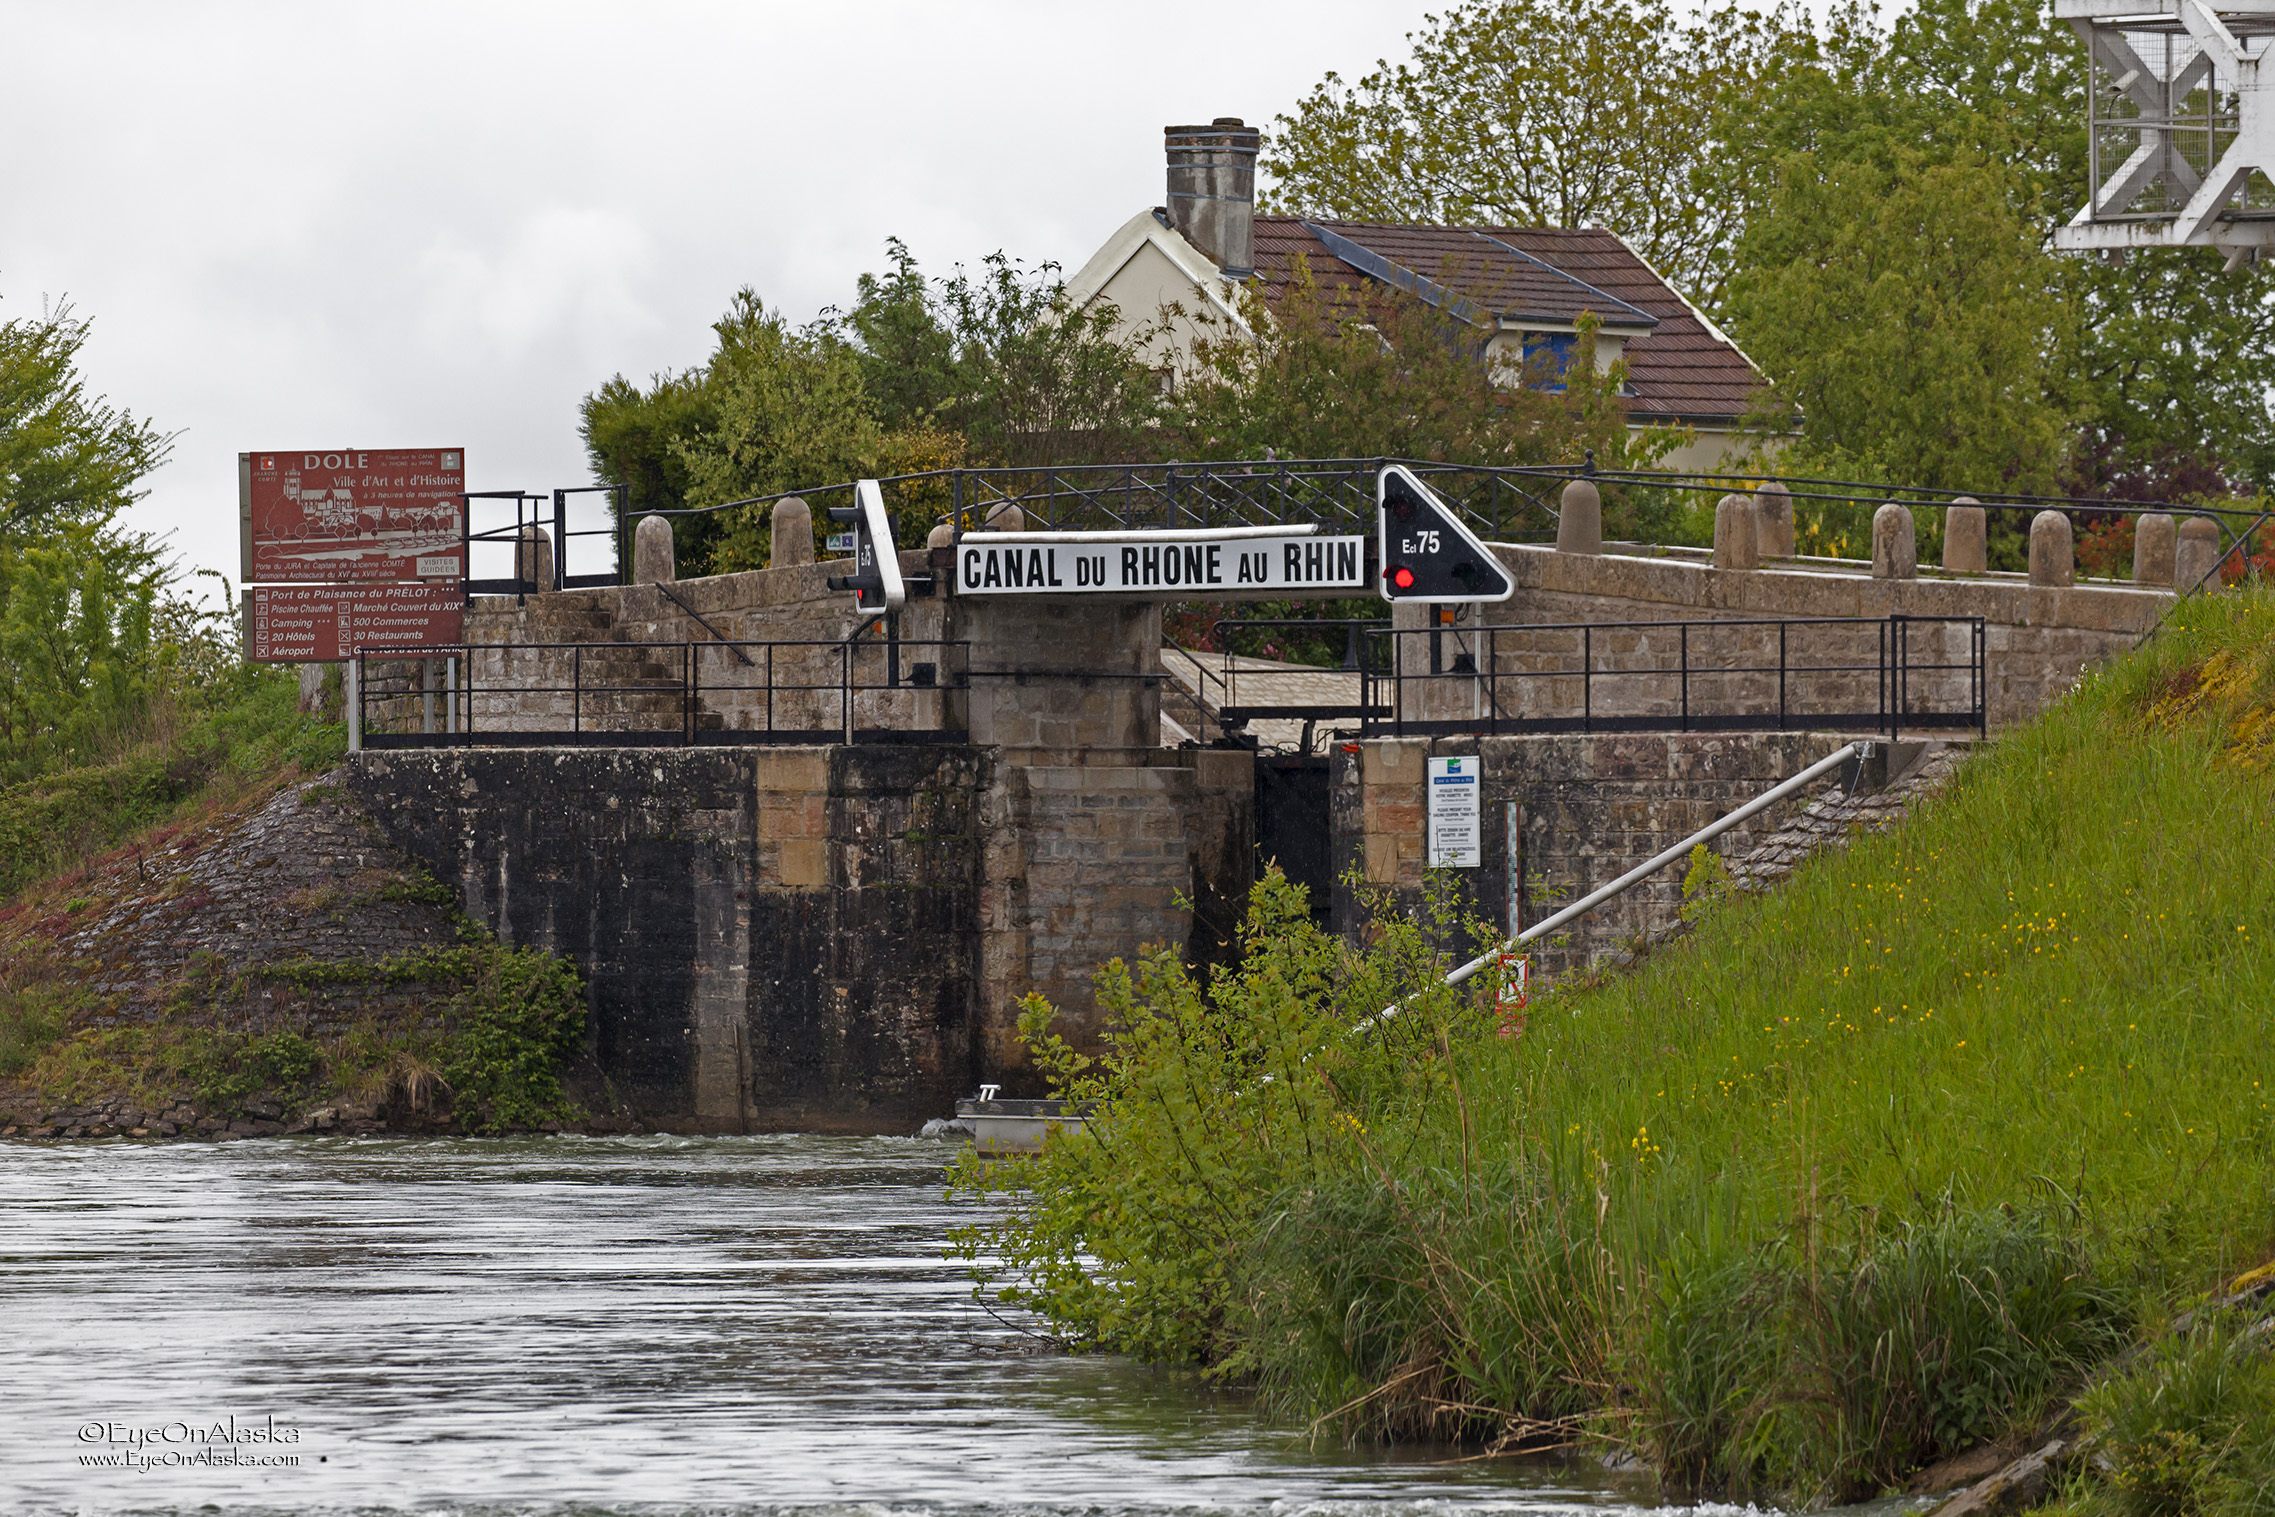 Here's the big turn onto the Canal du Rhône au Rhin. We have to stop at this first lock to pick up an electronic lock control which we'll use for the next 20 or so locks. The guy running the lock today was really helpful.